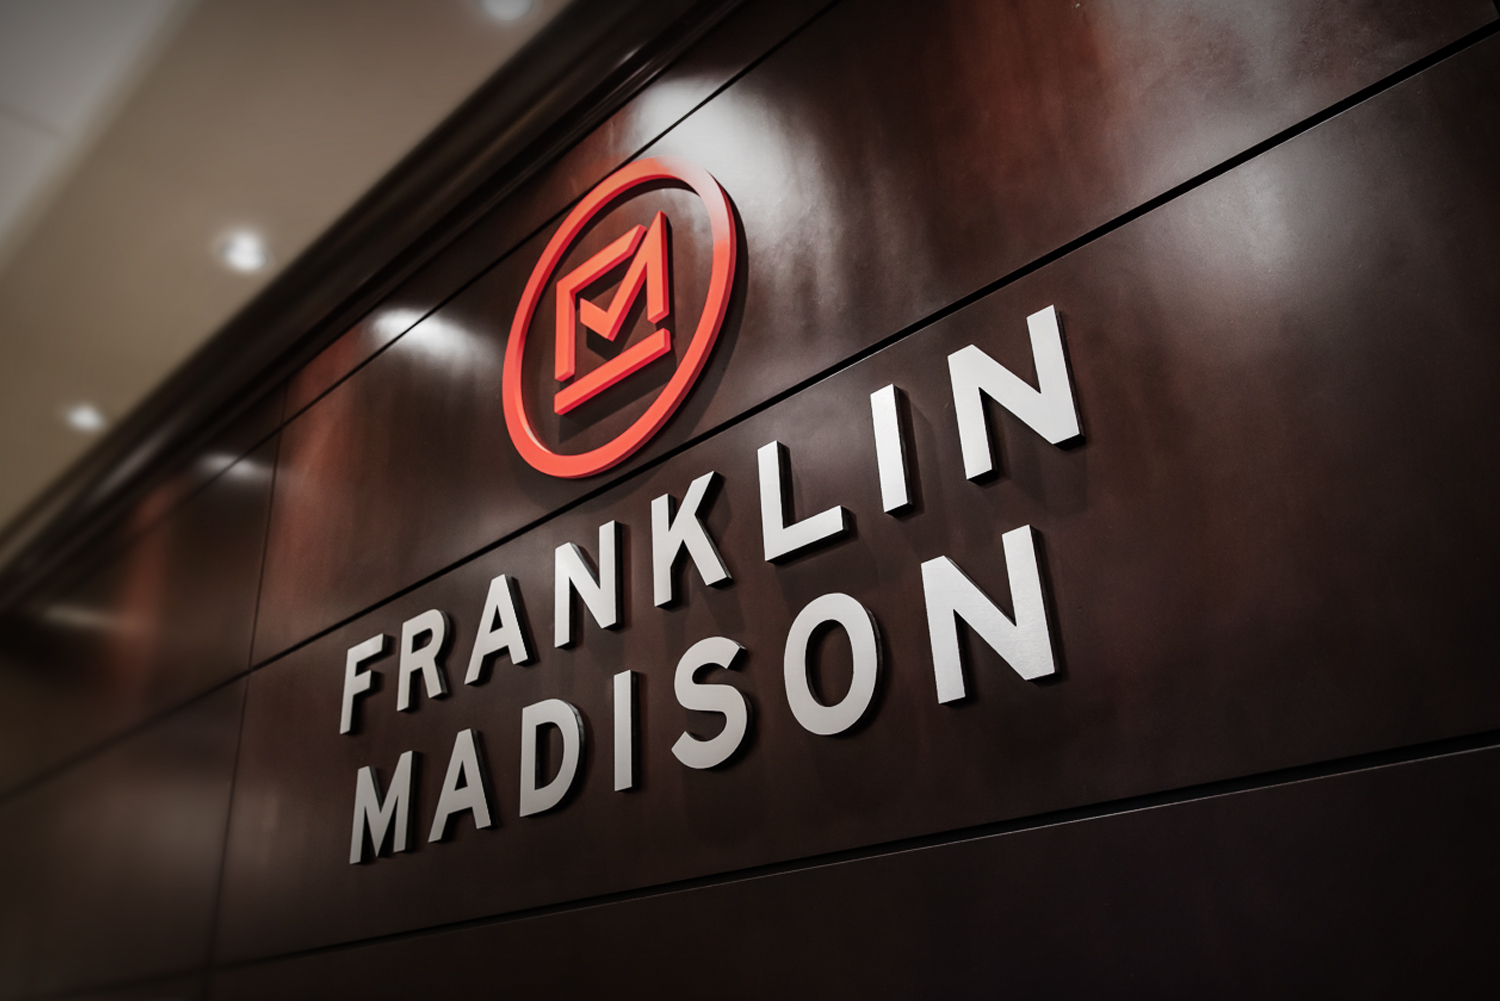 bohan | Indoor Signage for Franklin Madison. Raised letters and logos.